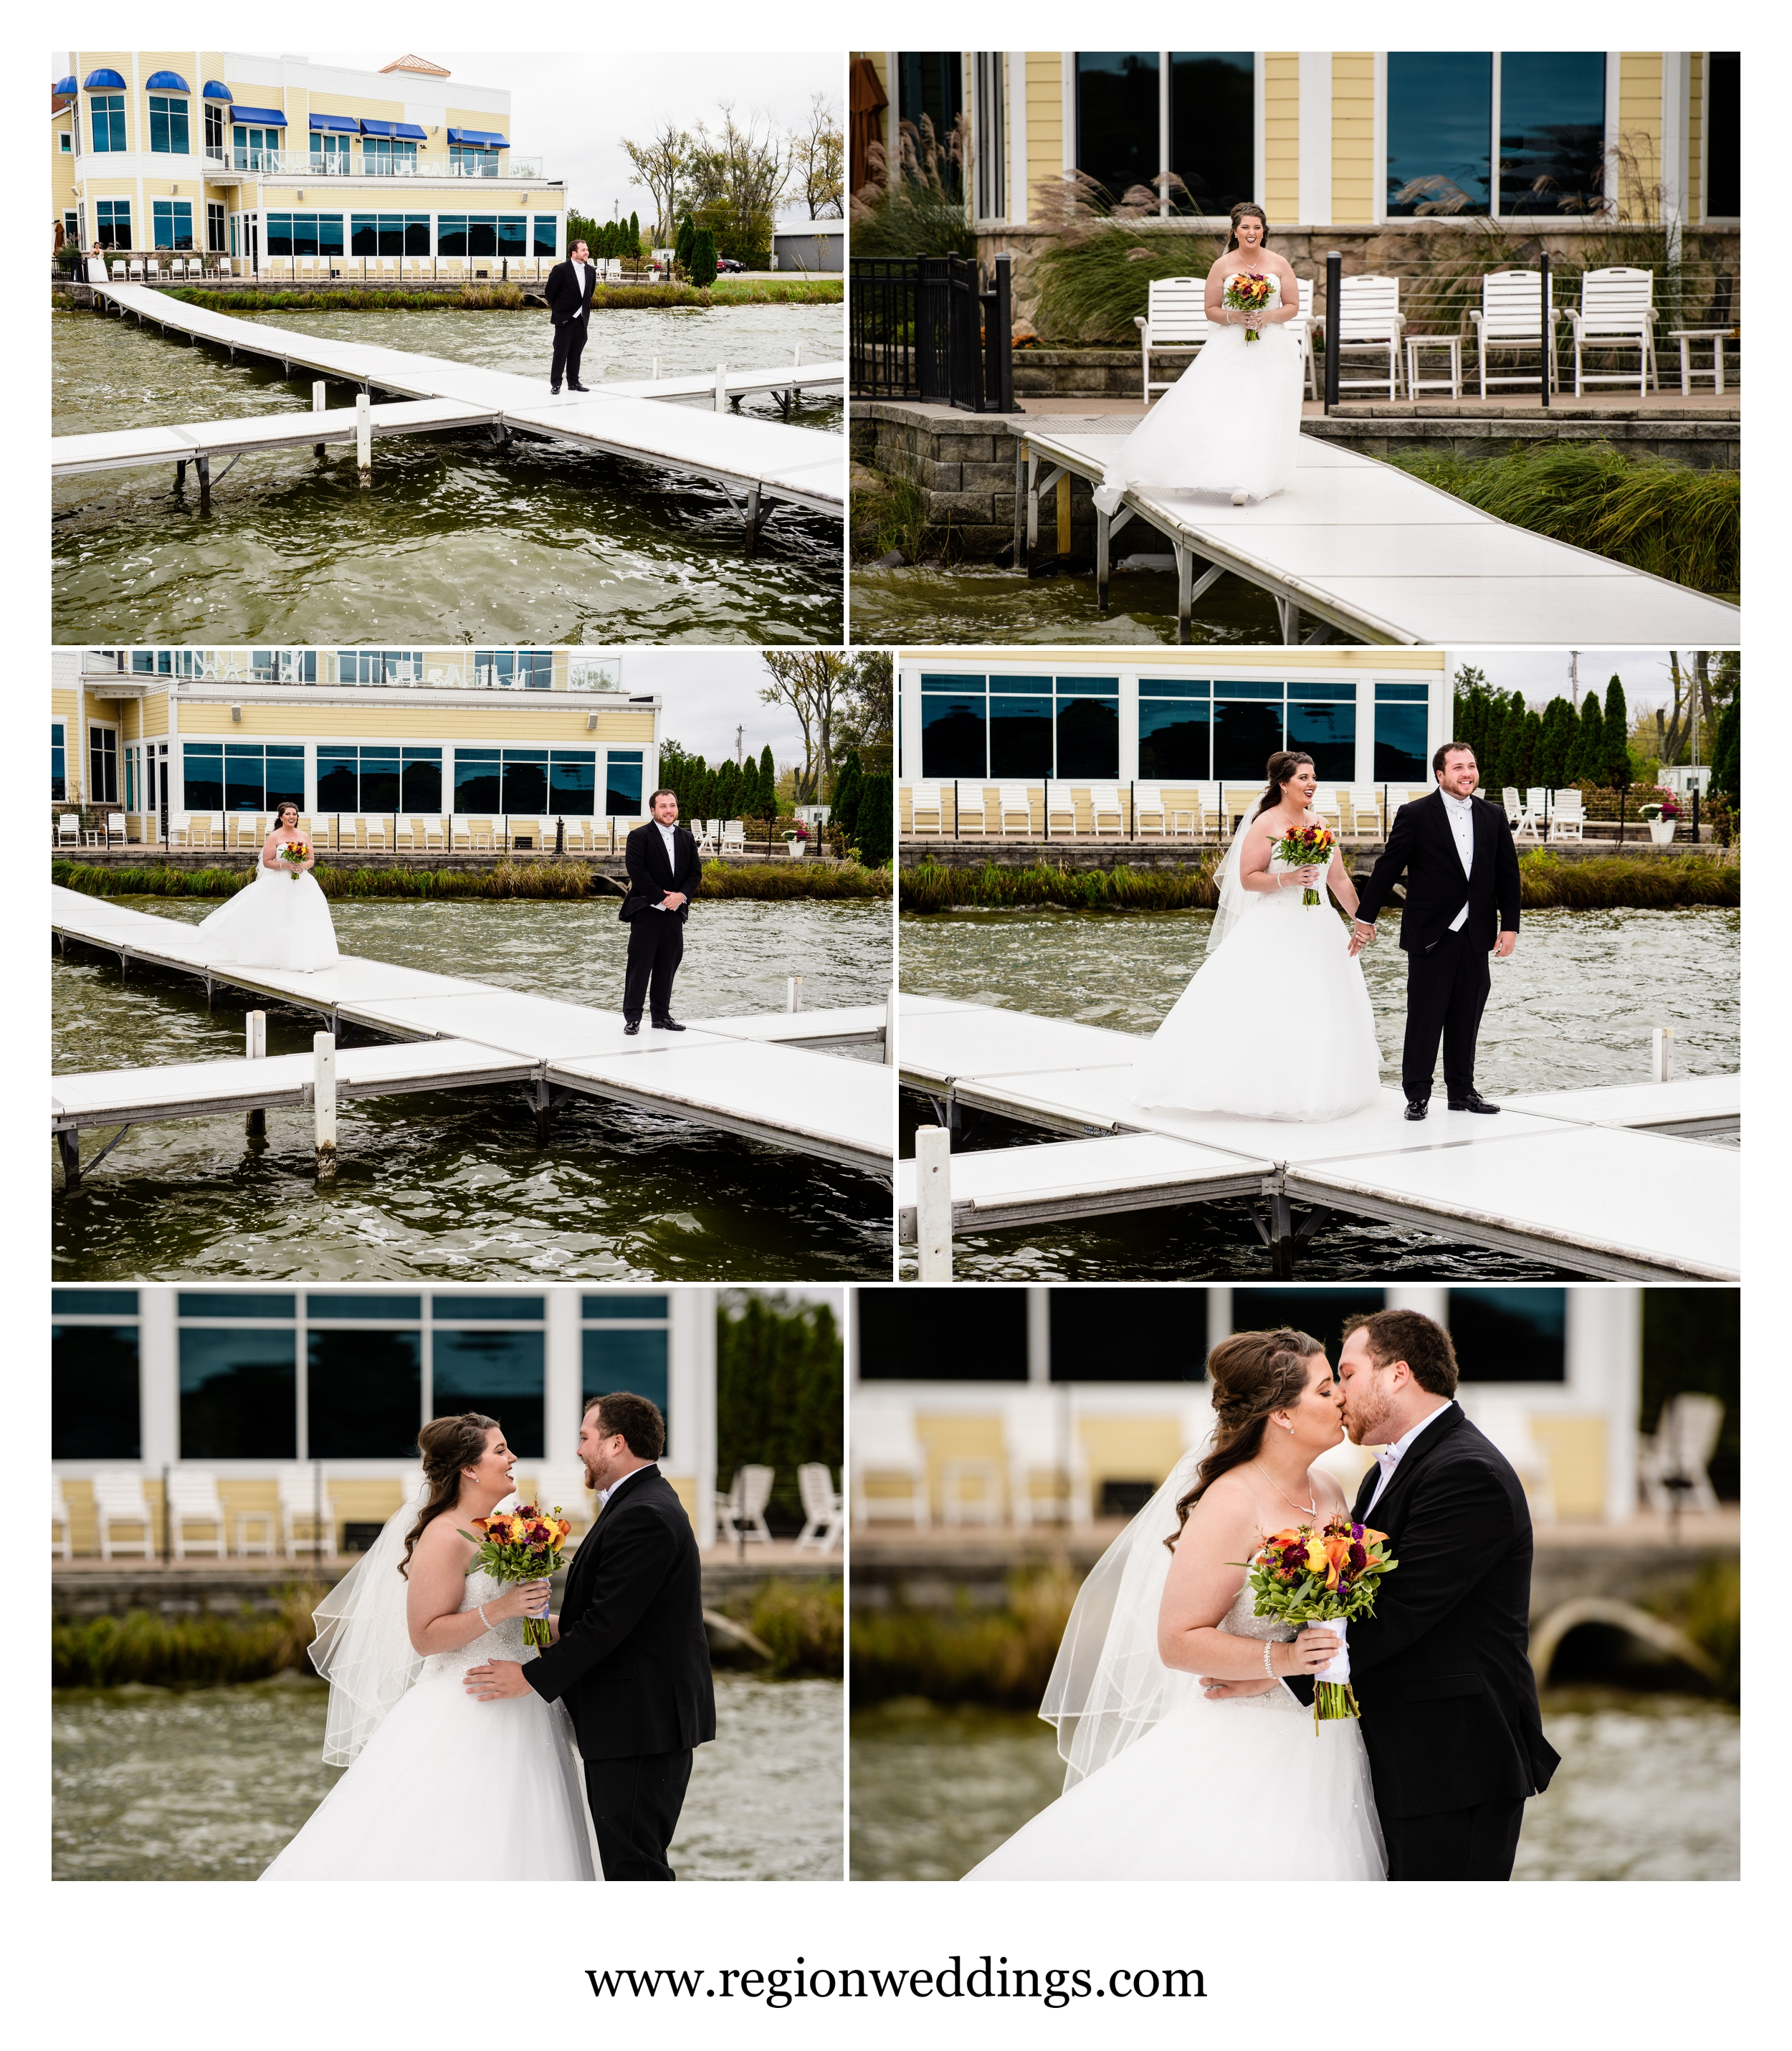 First look for the bride and groom on the pier at Lighthouse Restaurant.